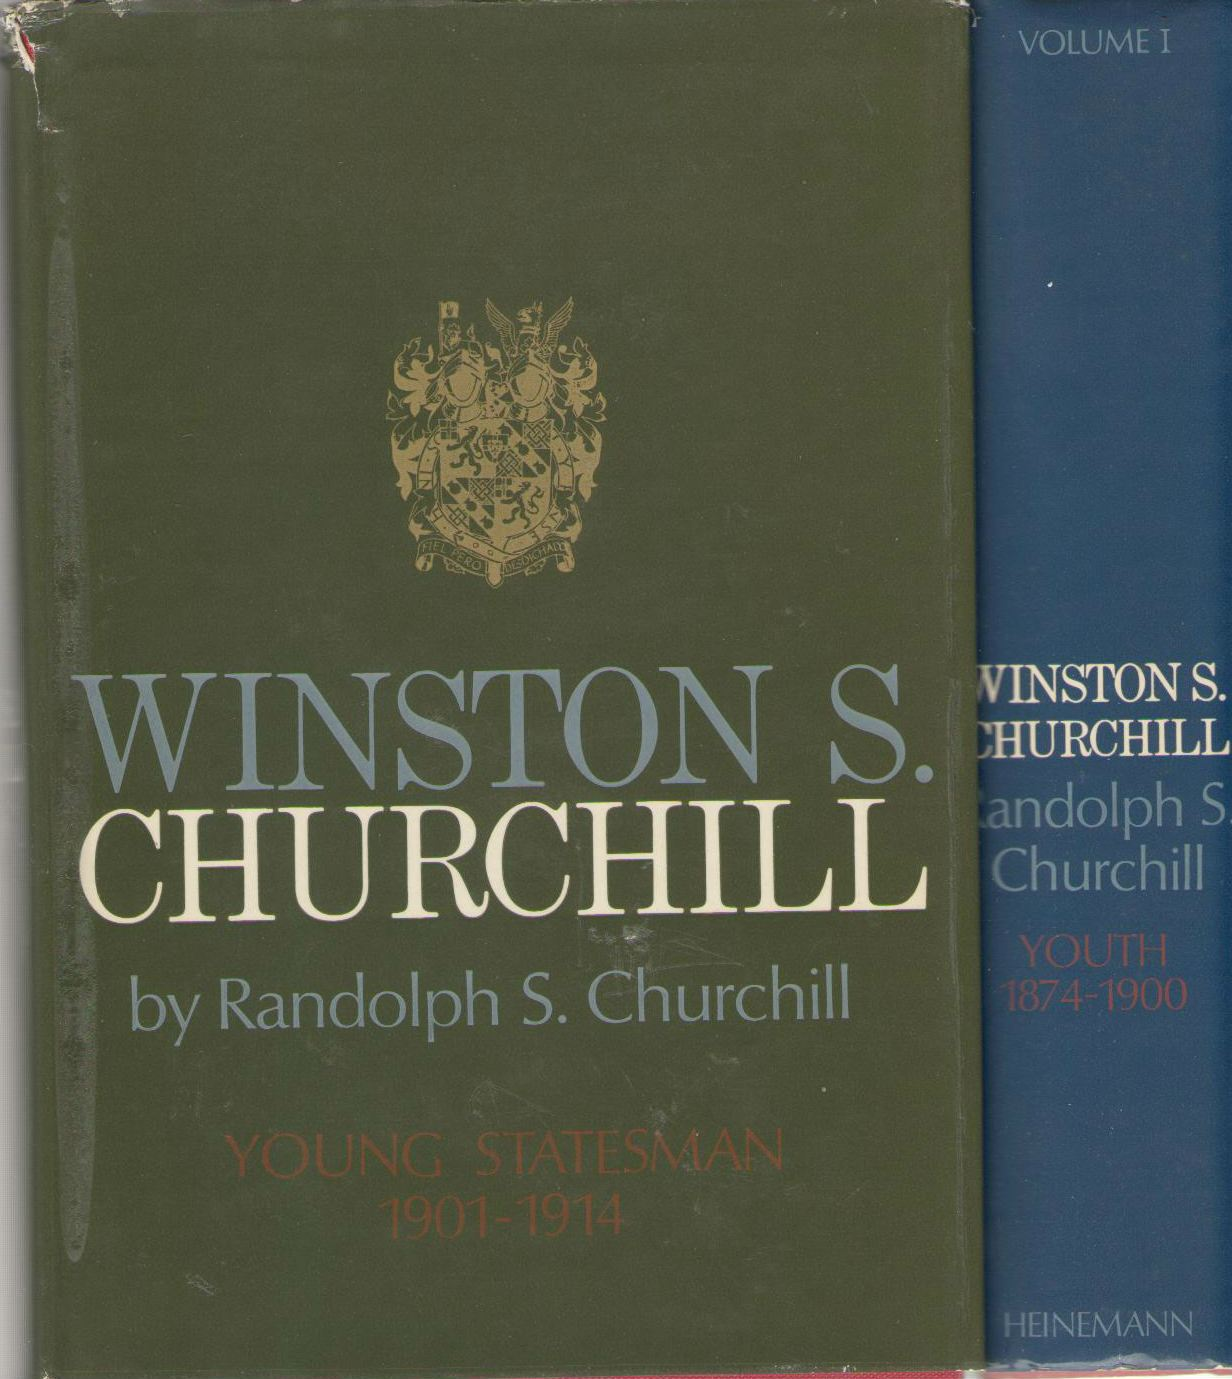 WINSTON S. CHURCHILL. Volume I: Youth 1874 - 1900. & Volume II: Young Statesman, 1901-1914, Randolph Churchill